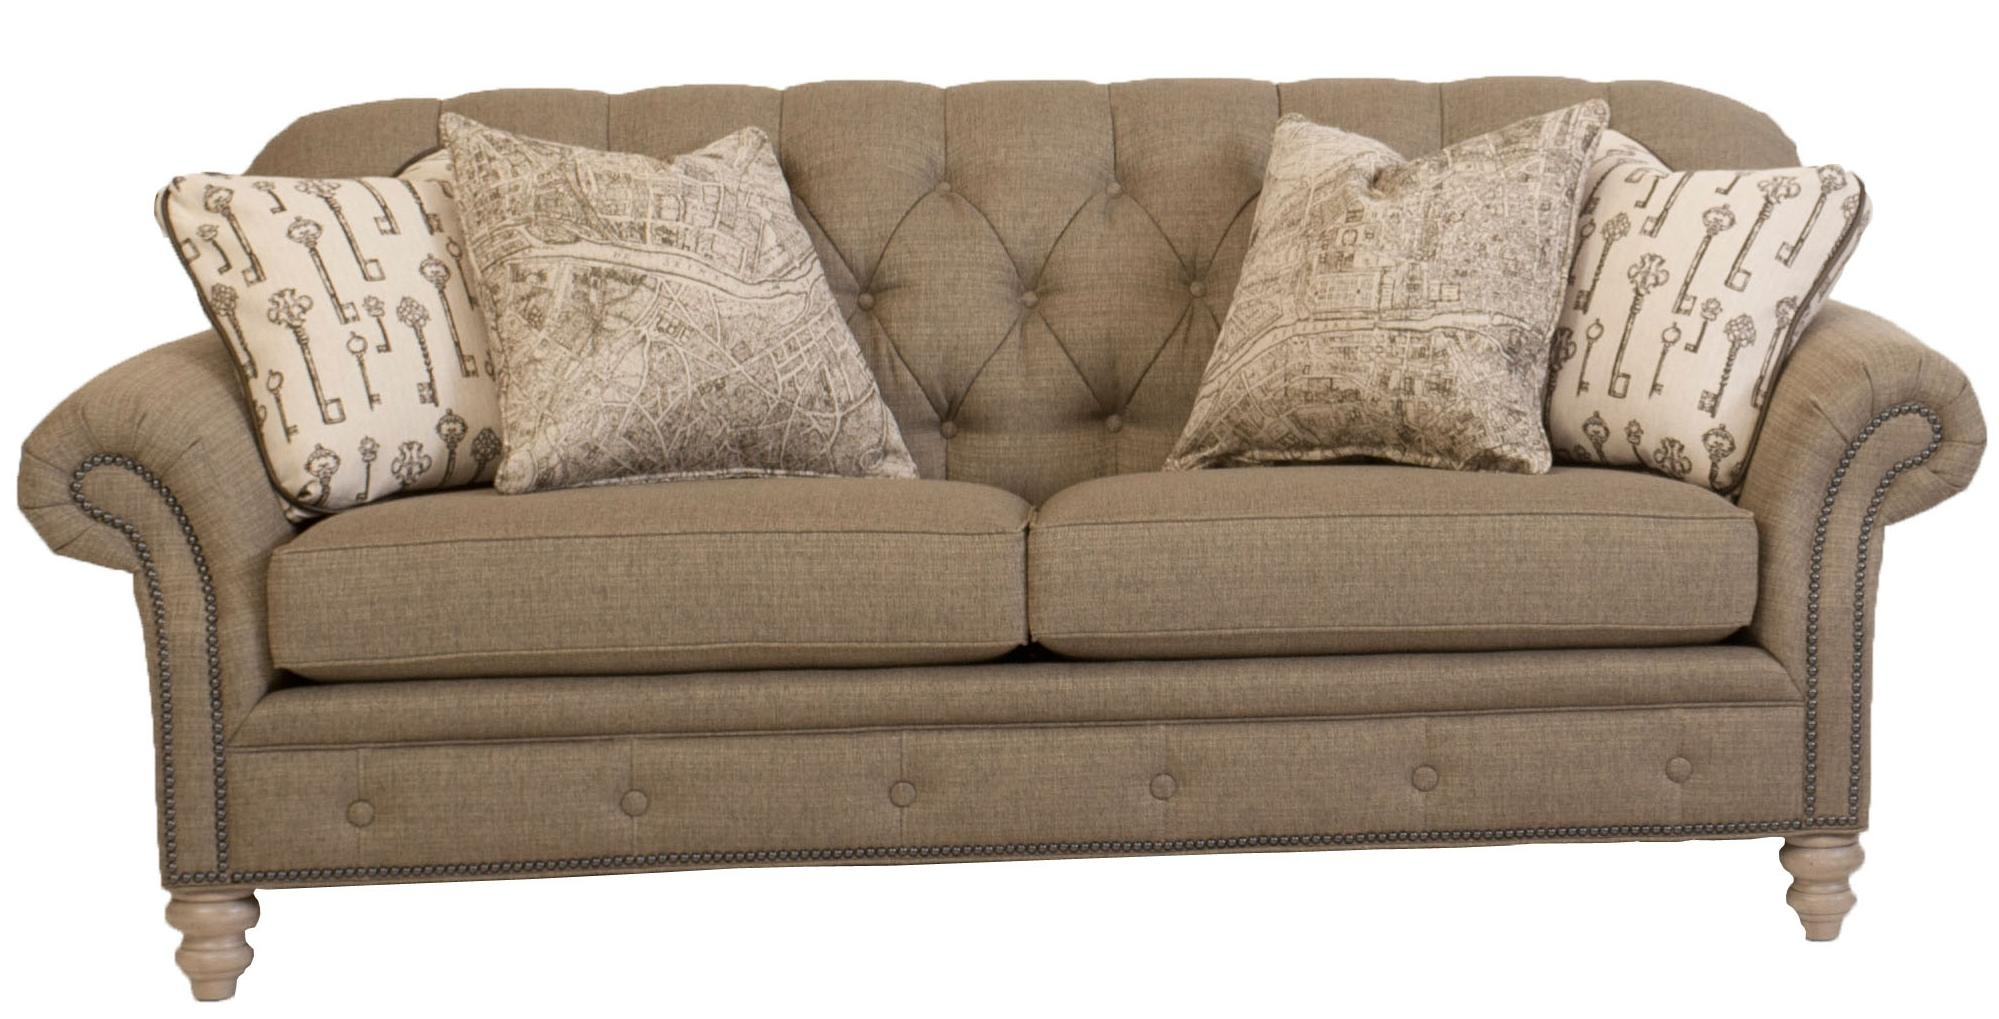 Fresh Sectional Sofa With Nailhead Trim 64 For Your Sofas And Pertaining To Sectional Sofas With Nailheads (Image 4 of 10)